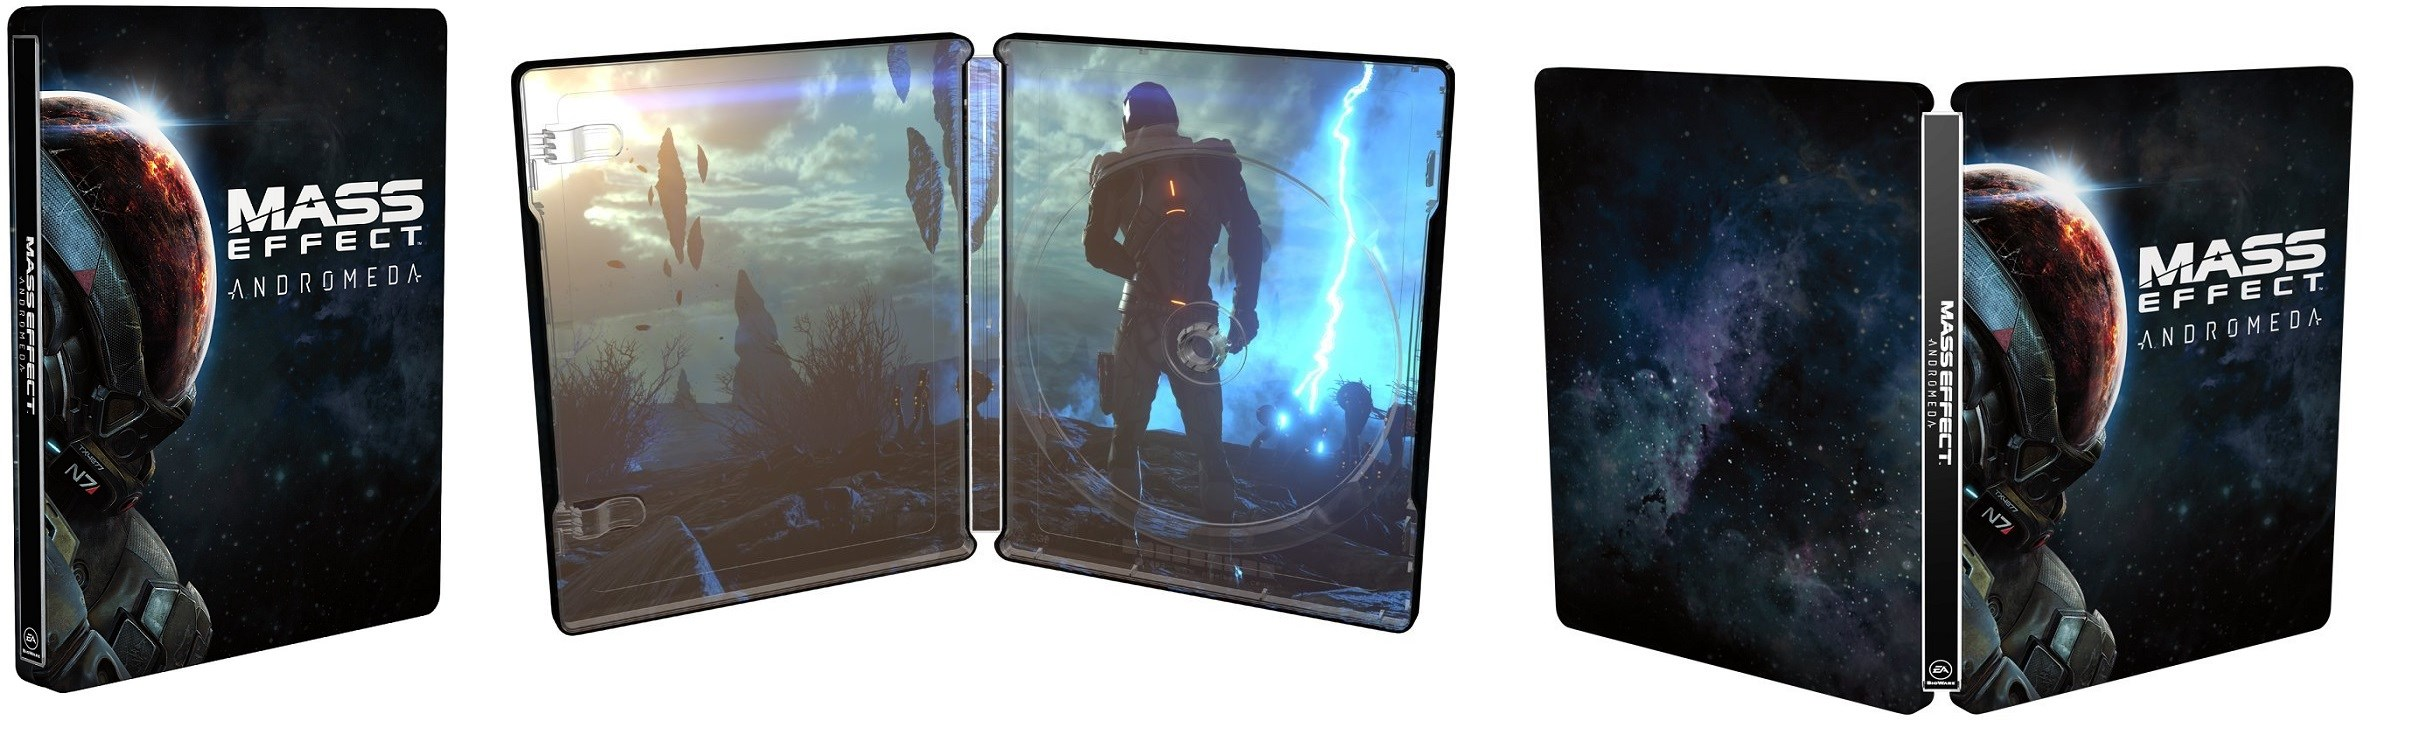 /attachments/052126089105107130249082242203251214248224096031/dbib_mass_effect_andromeda_-_steelbook_edition_(_without_game_)_(3).jpg